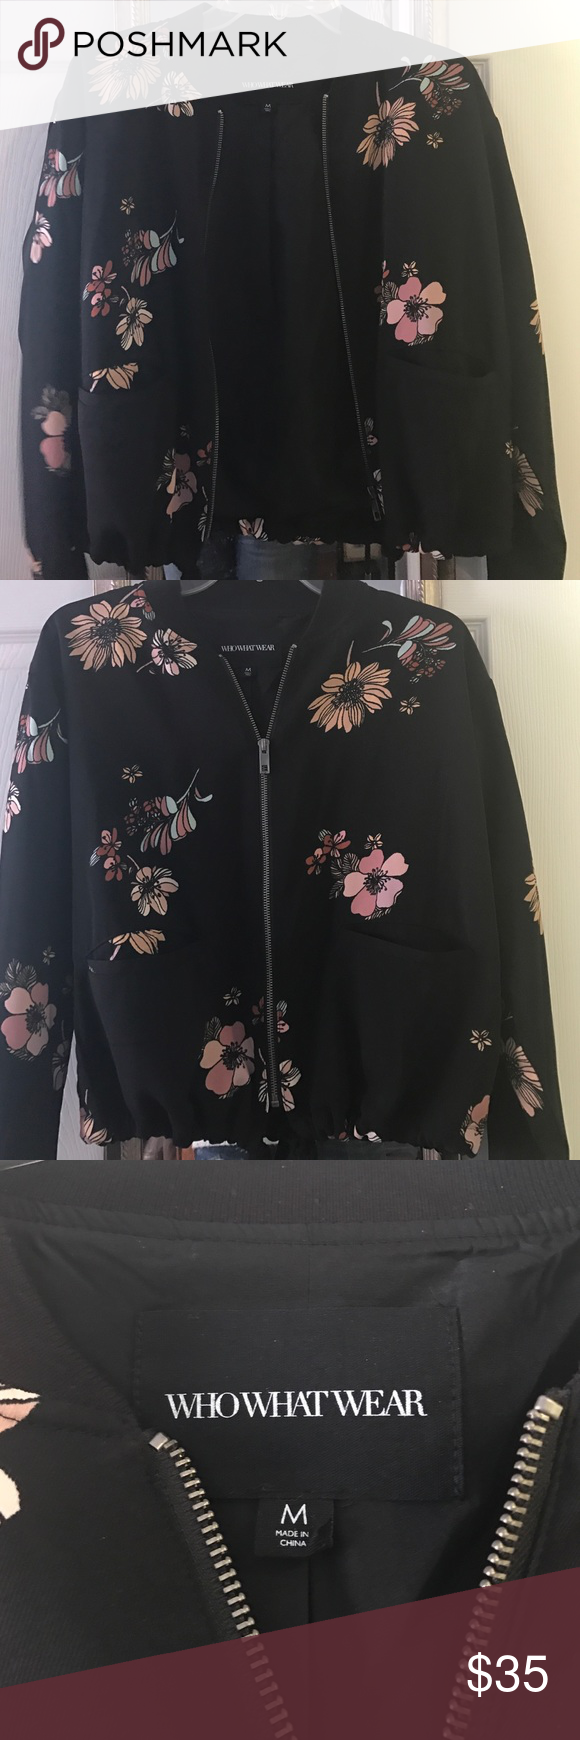 Floral Bomber Jacket Who What Wear collection floral bomber jacket- great neutral colored flowers goes with anything! Size Medium- fall 2016 purchase, only worn once. who what wear Jackets & Coats